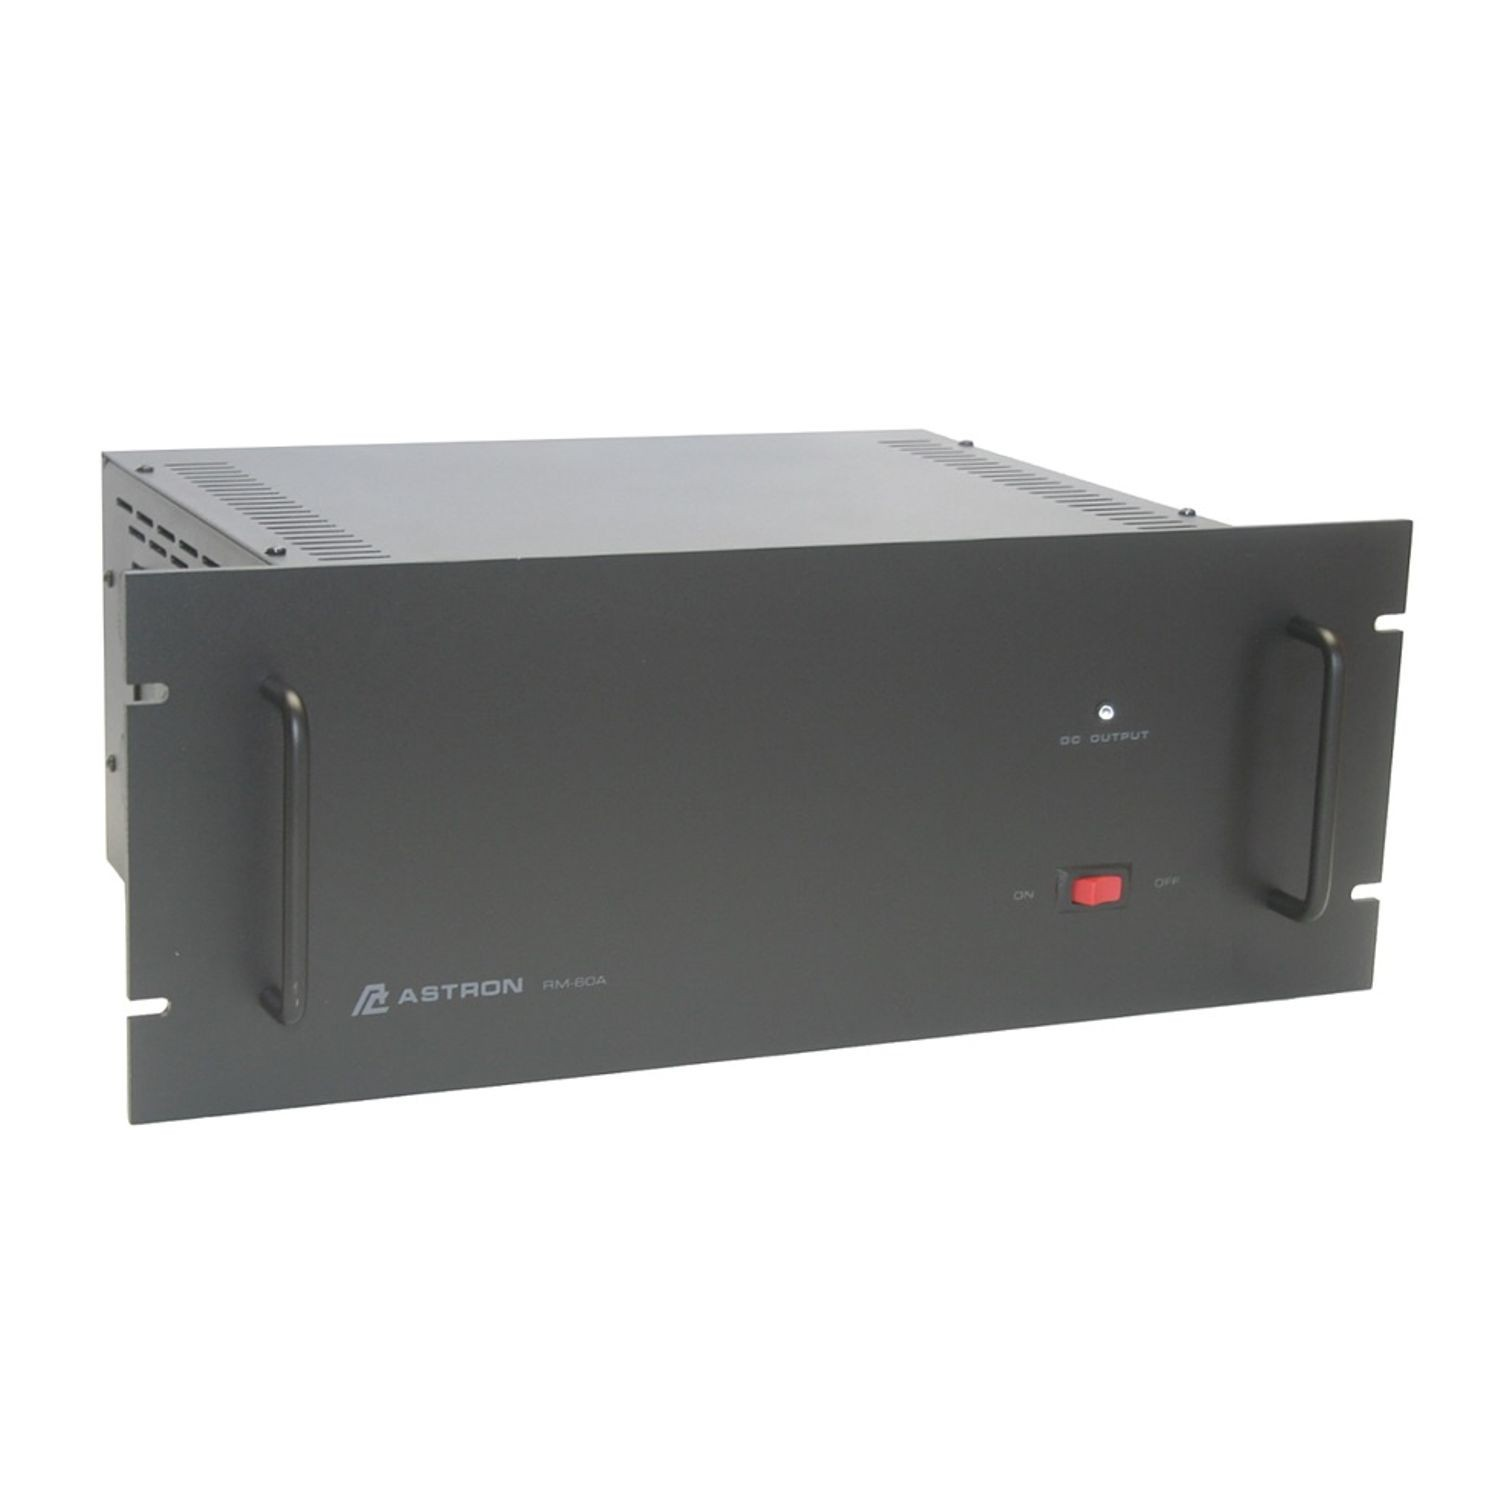 19 IN. RACK MOUNTED LINEAR POWER SUPPLY WITH SEP VOLT AND AMP METER